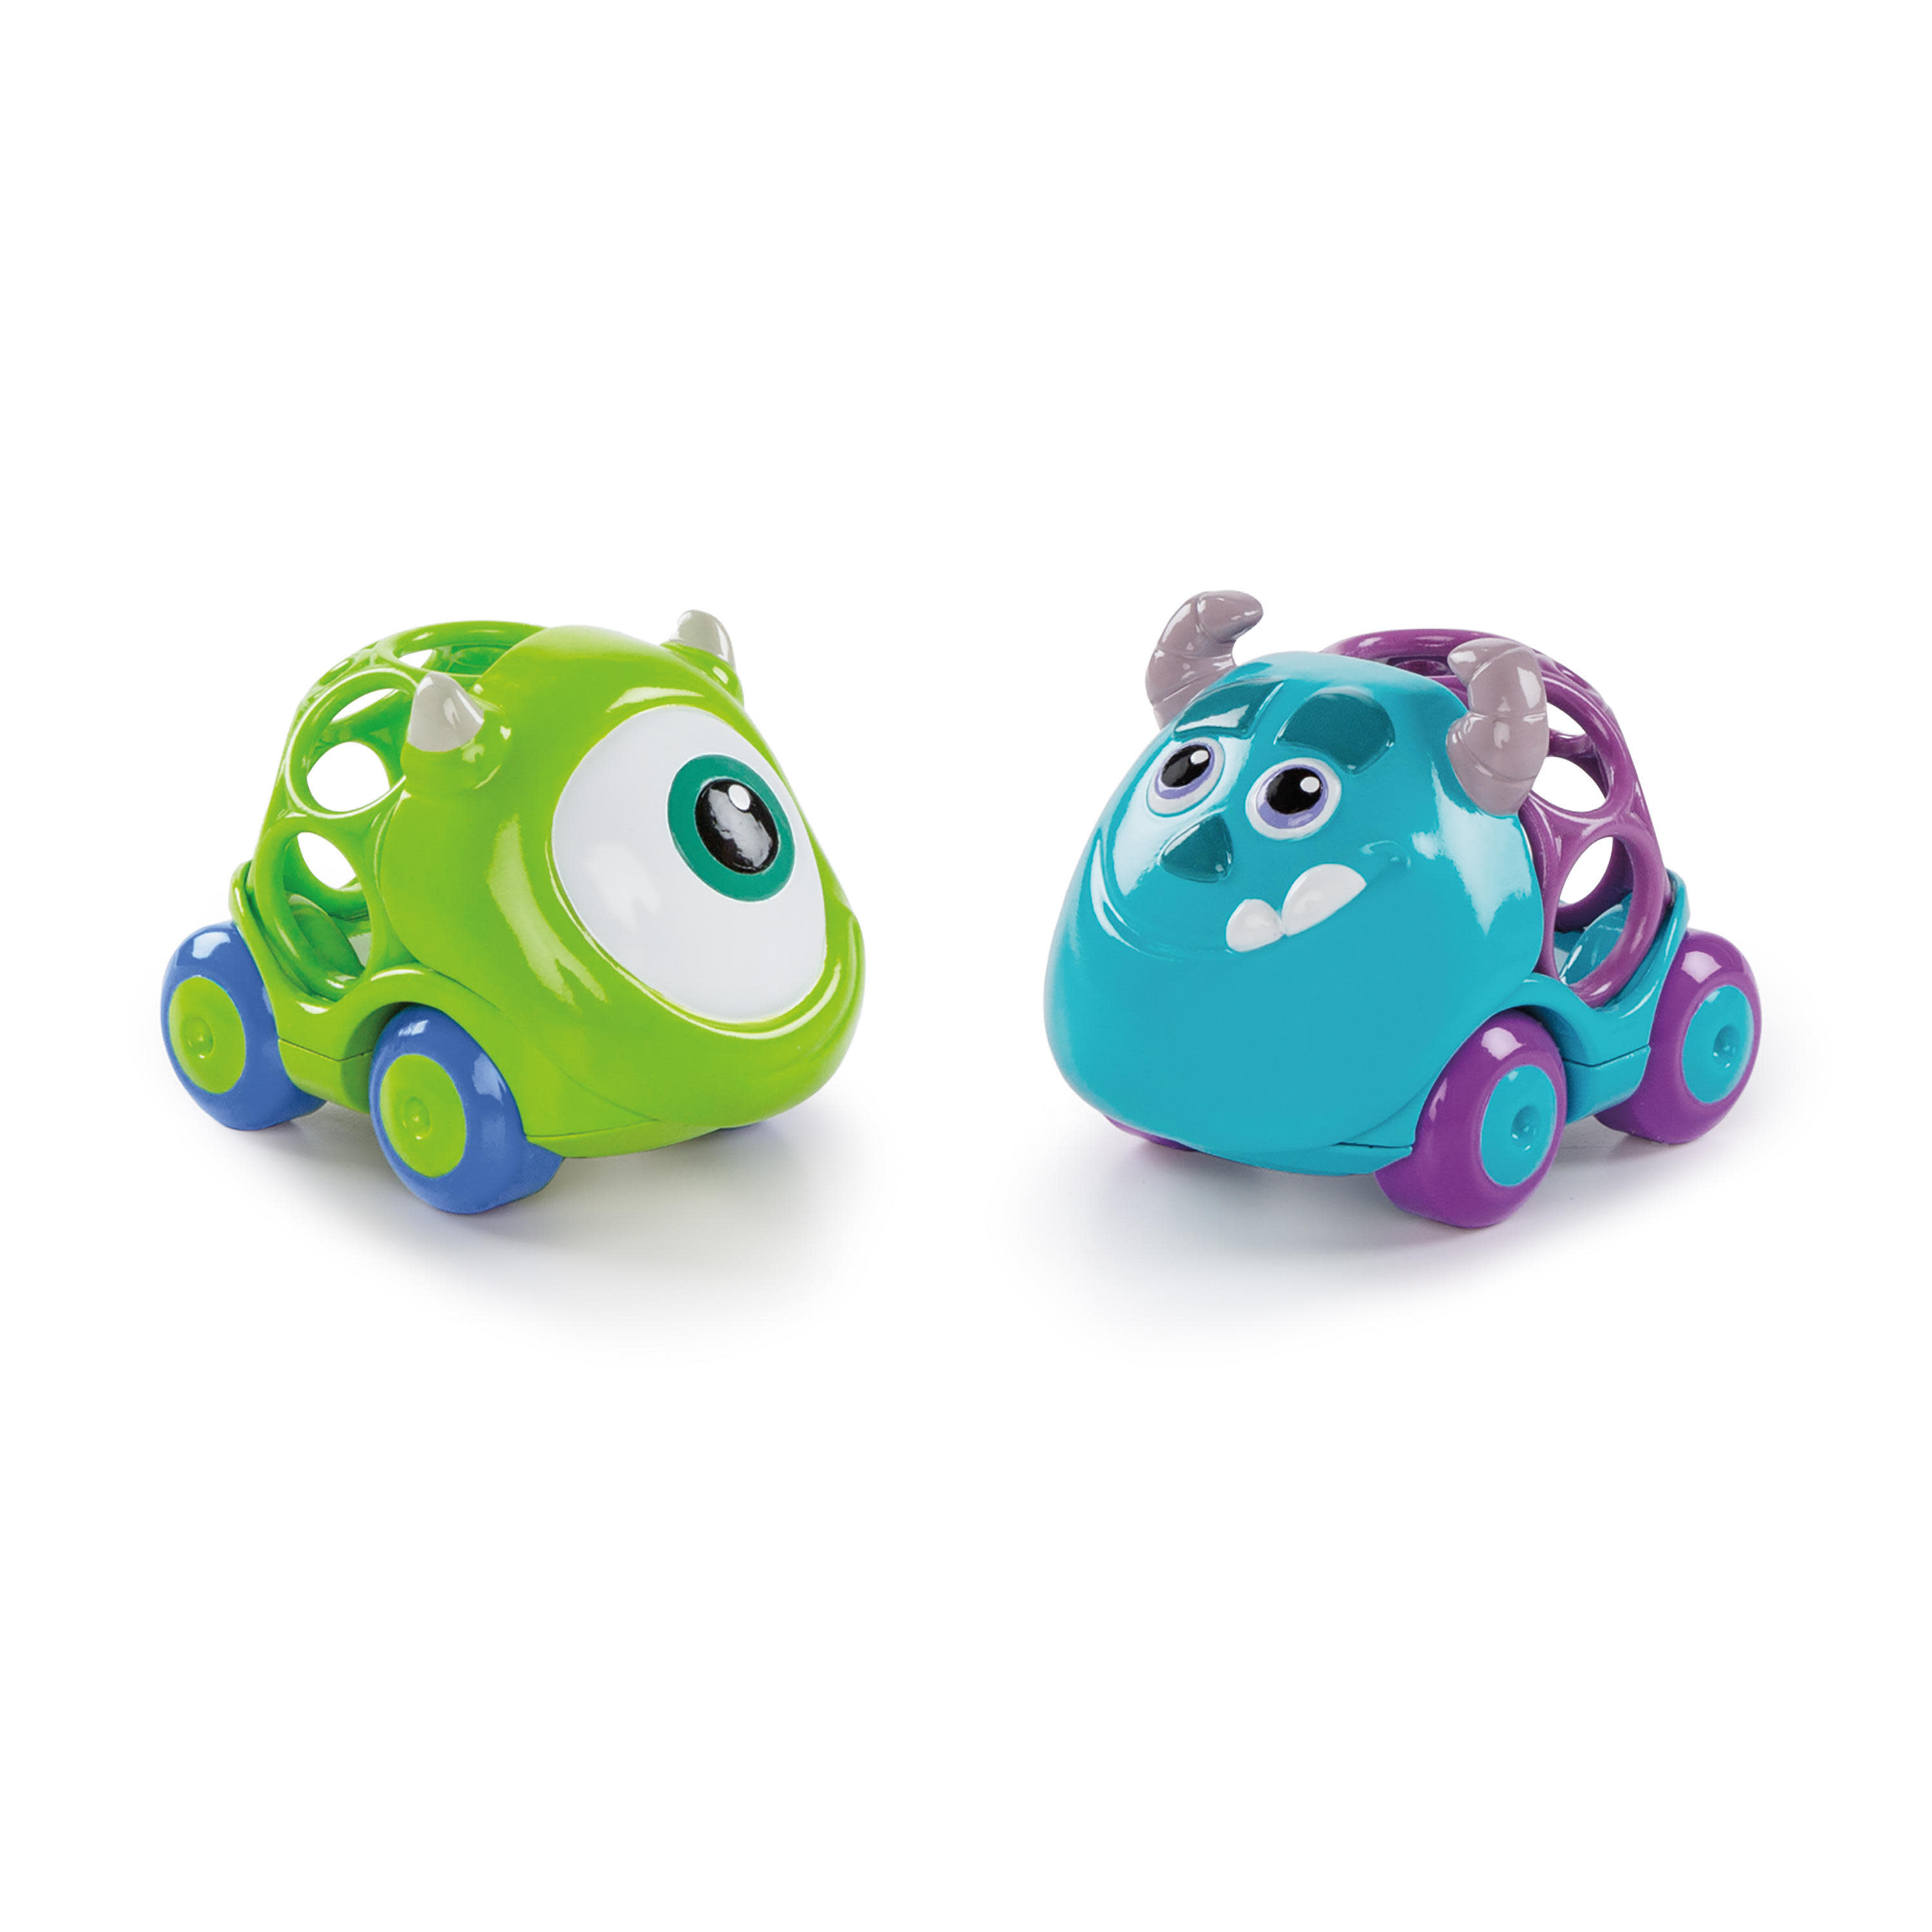 Bright Starts Disney Baby Go Grippers Collection Push Cars Monsters Inc Ages 12 Months Walmart Com Walmart Com